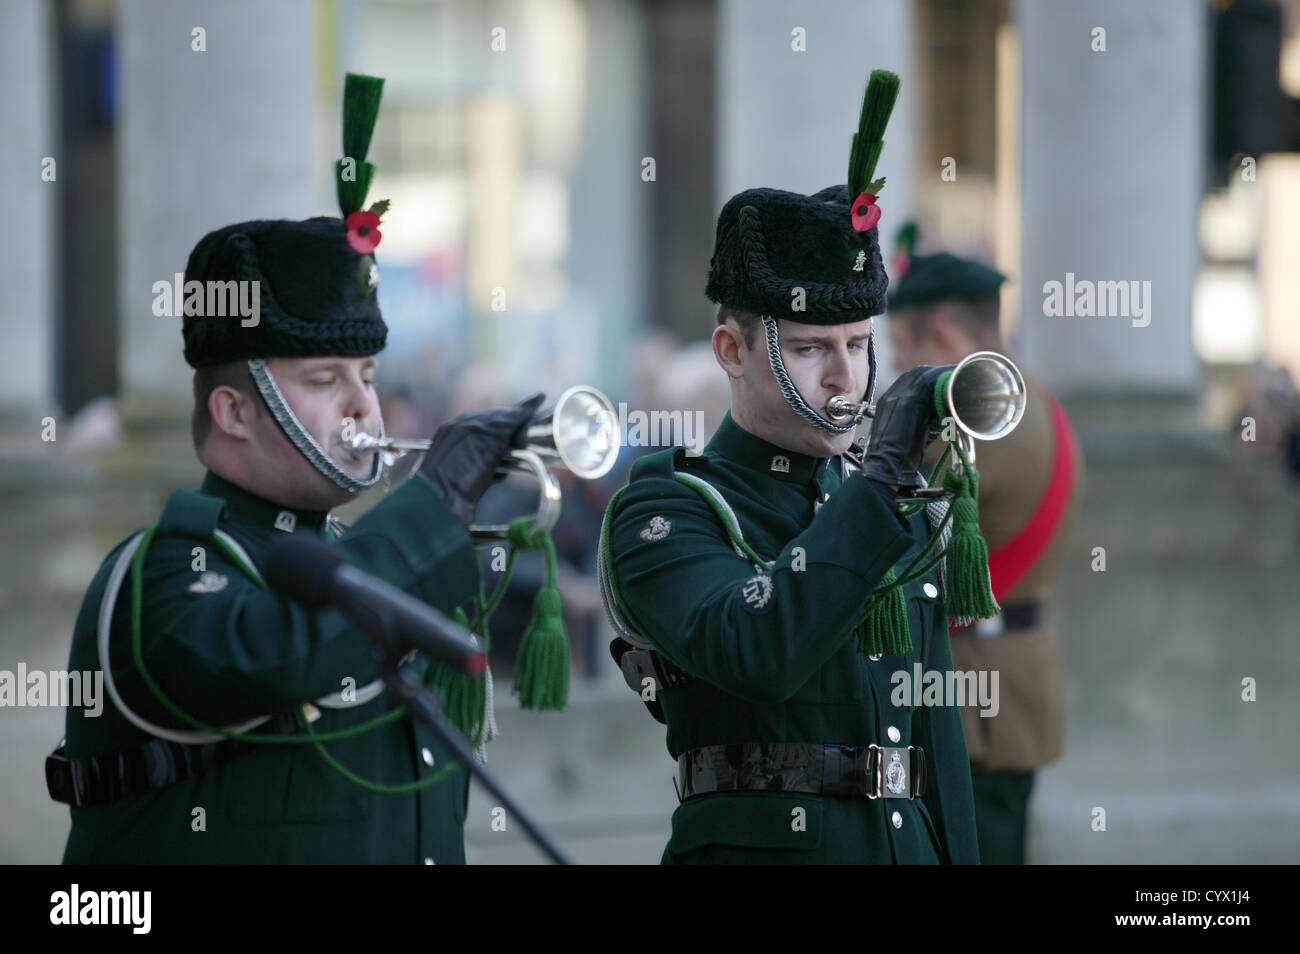 Two Buglers sound the last post at the Cenotaph in Belfast on the national day of remembrance. - Stock Image